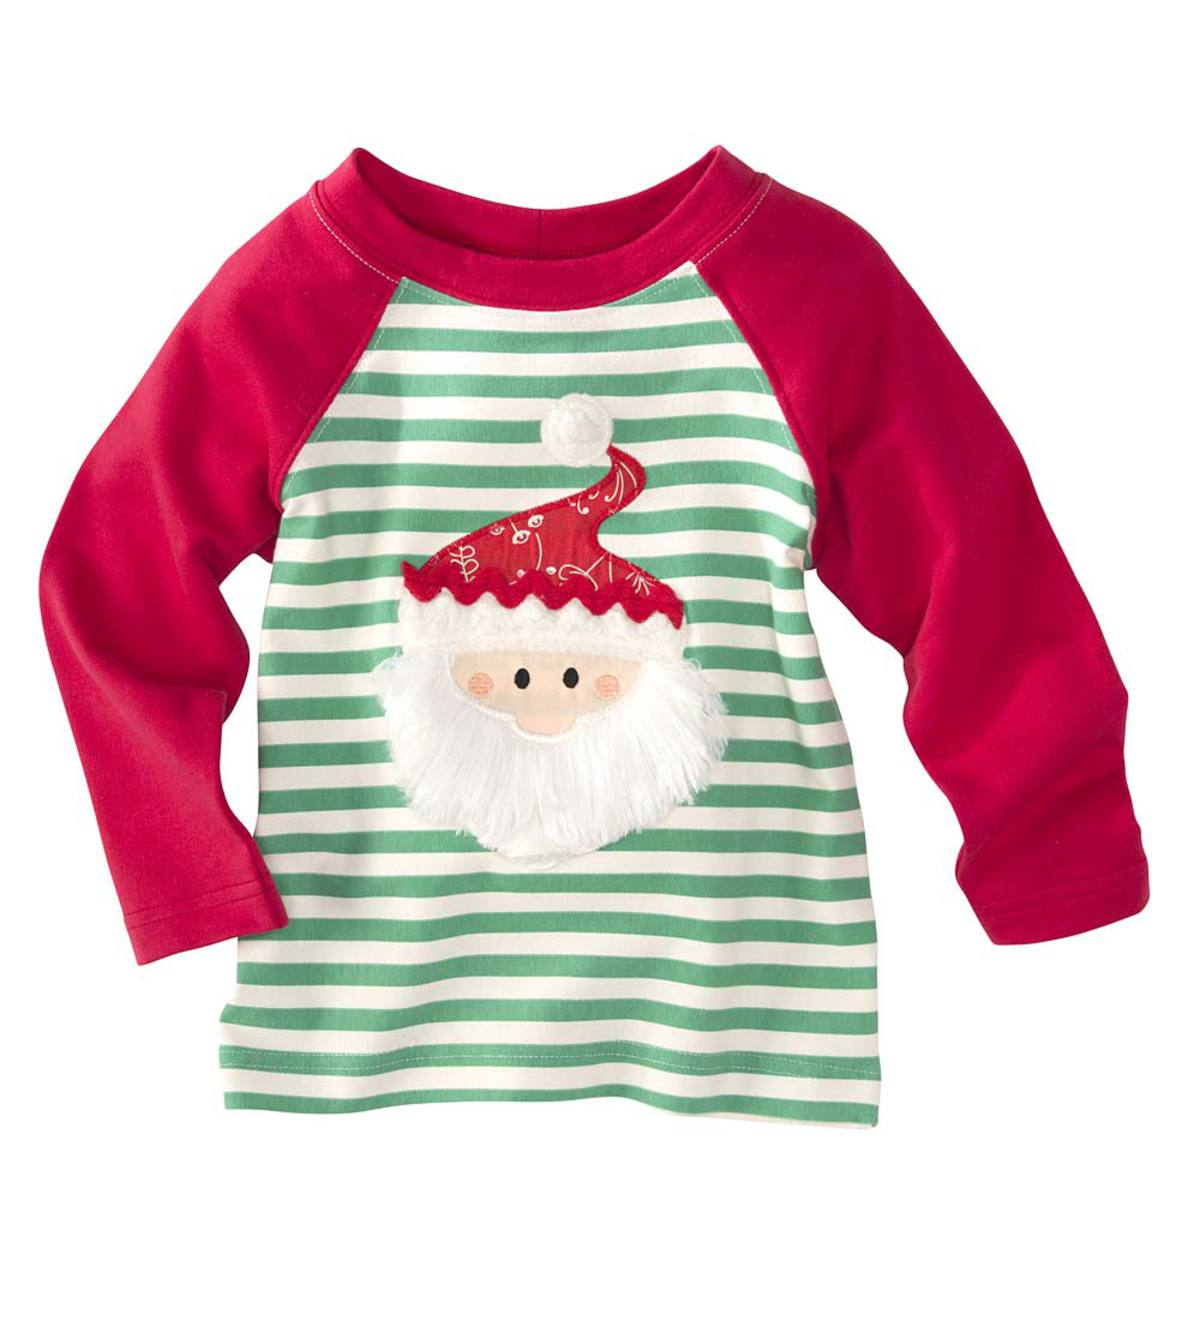 Green Striped Santa Tee - Red - 7